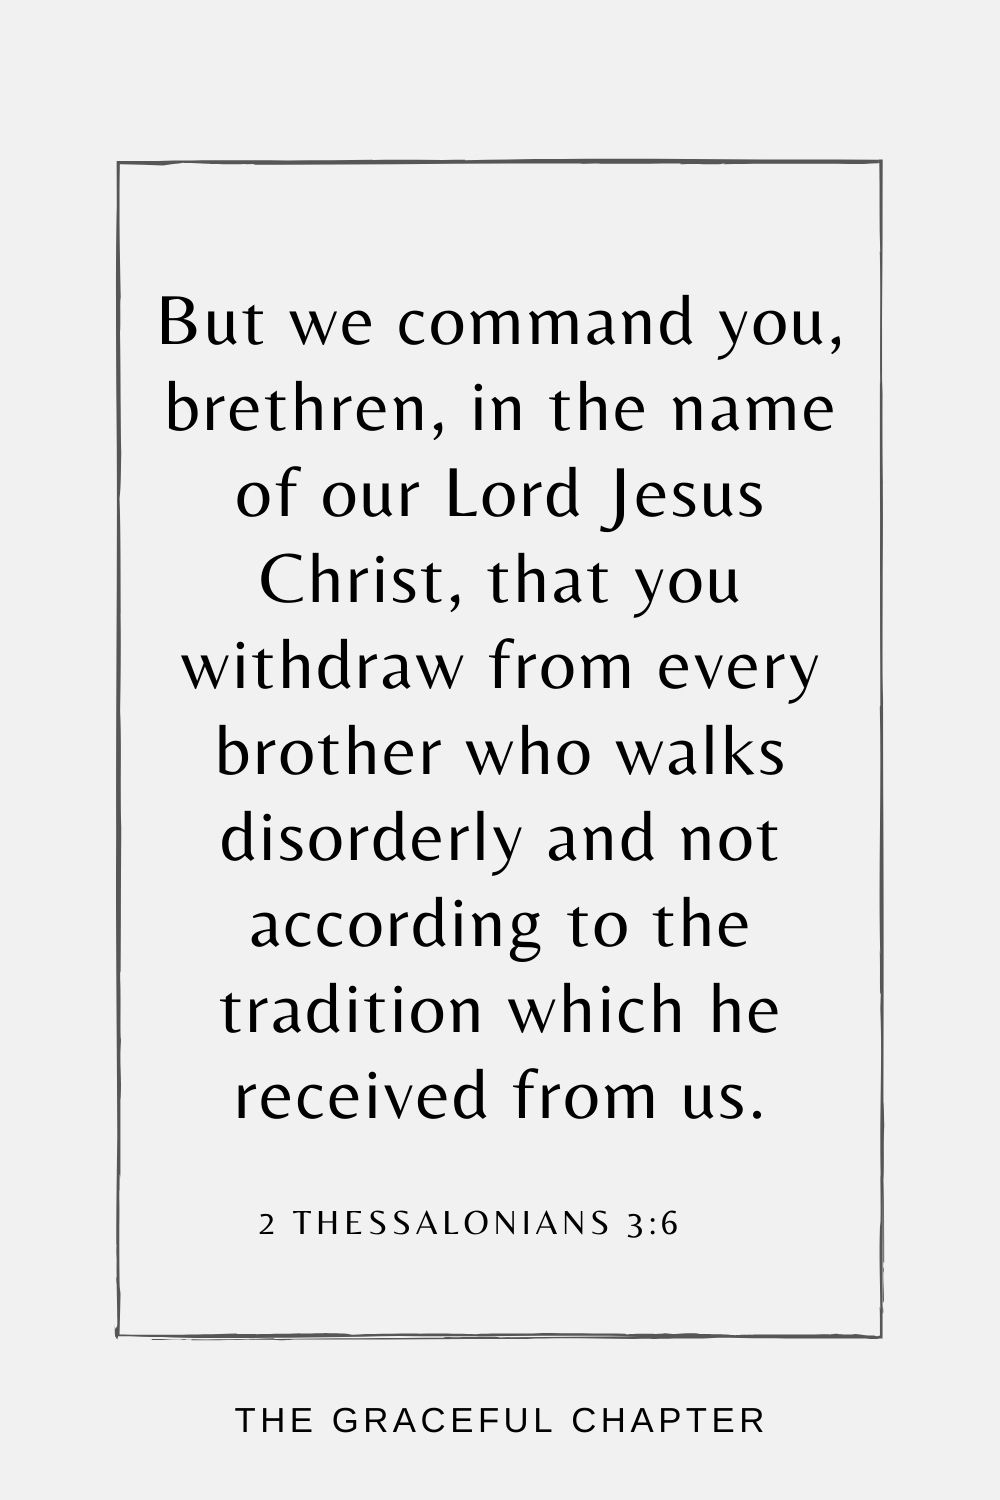 But we command you, brethren, in the name of our Lord Jesus Christ, that you withdraw from every brother who walks disorderly and not according to the tradition which he received from us. 2 Thessalonians 3:6